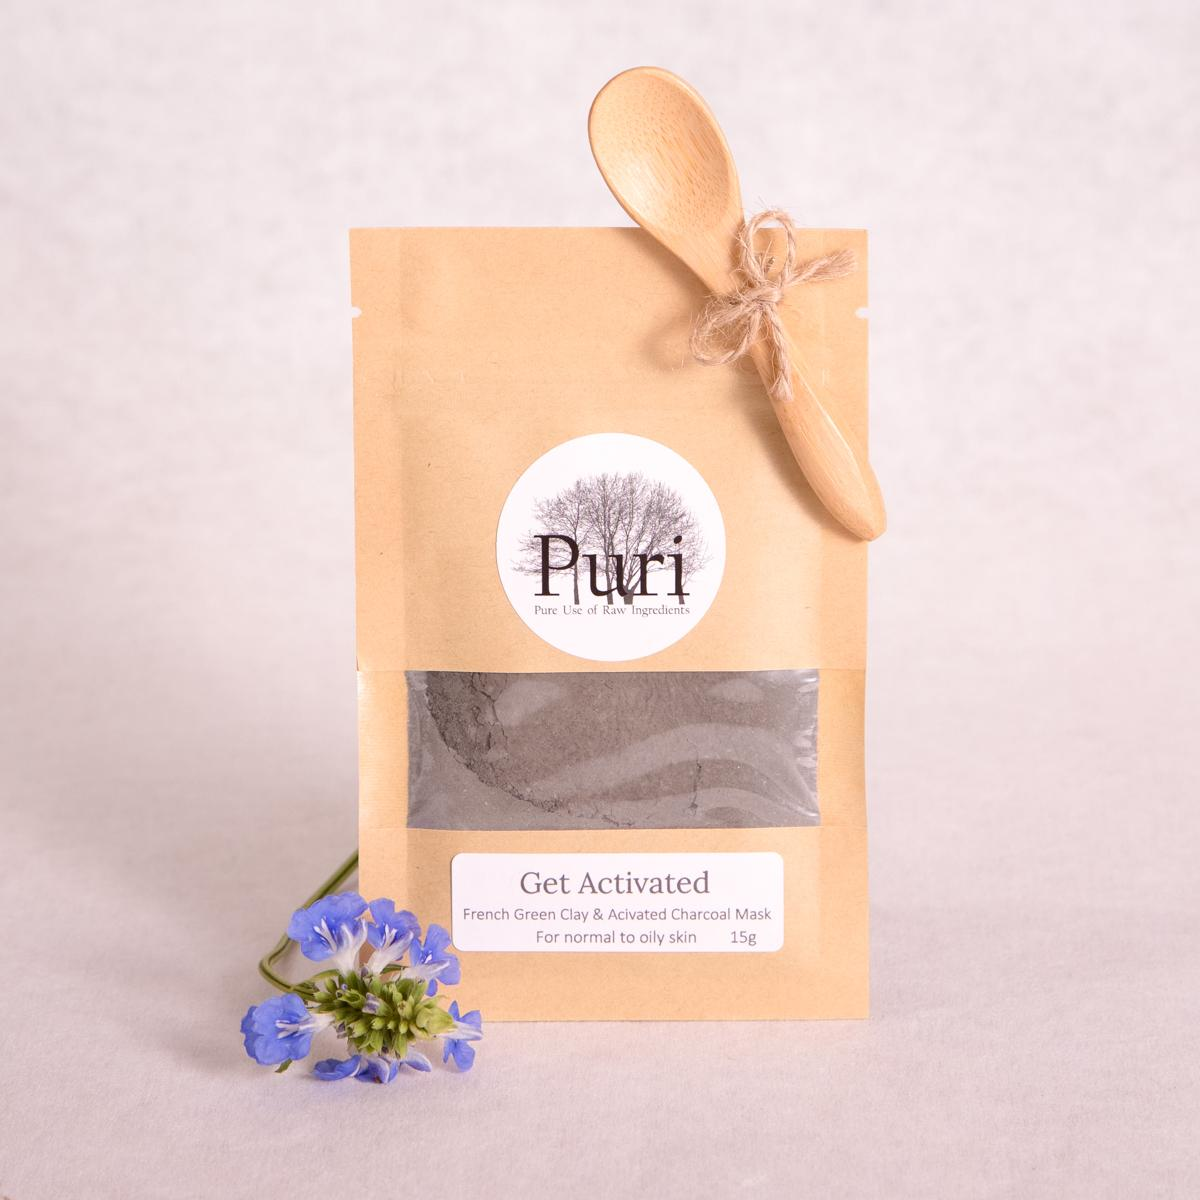 'Get Activated' French Green Clay & Activated Charcoal Mask - 15g - Clay Mask - Throw Some Seeds - Nature Inspired Gifts for the Home & Garden